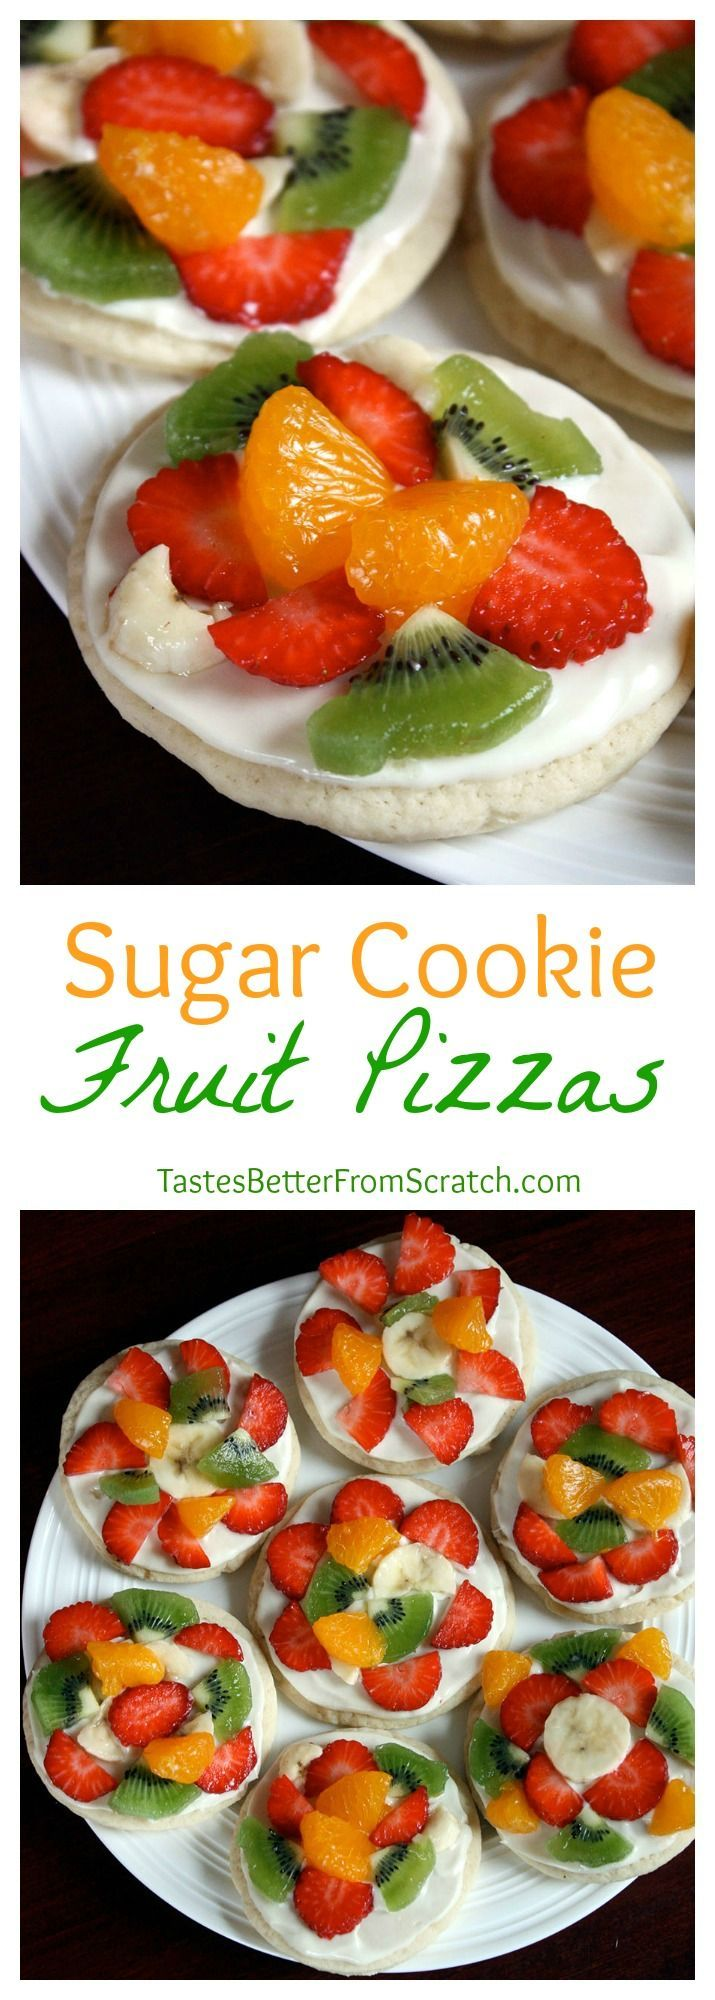 401 best images about Sweet Treats on Pinterest   Cream ...